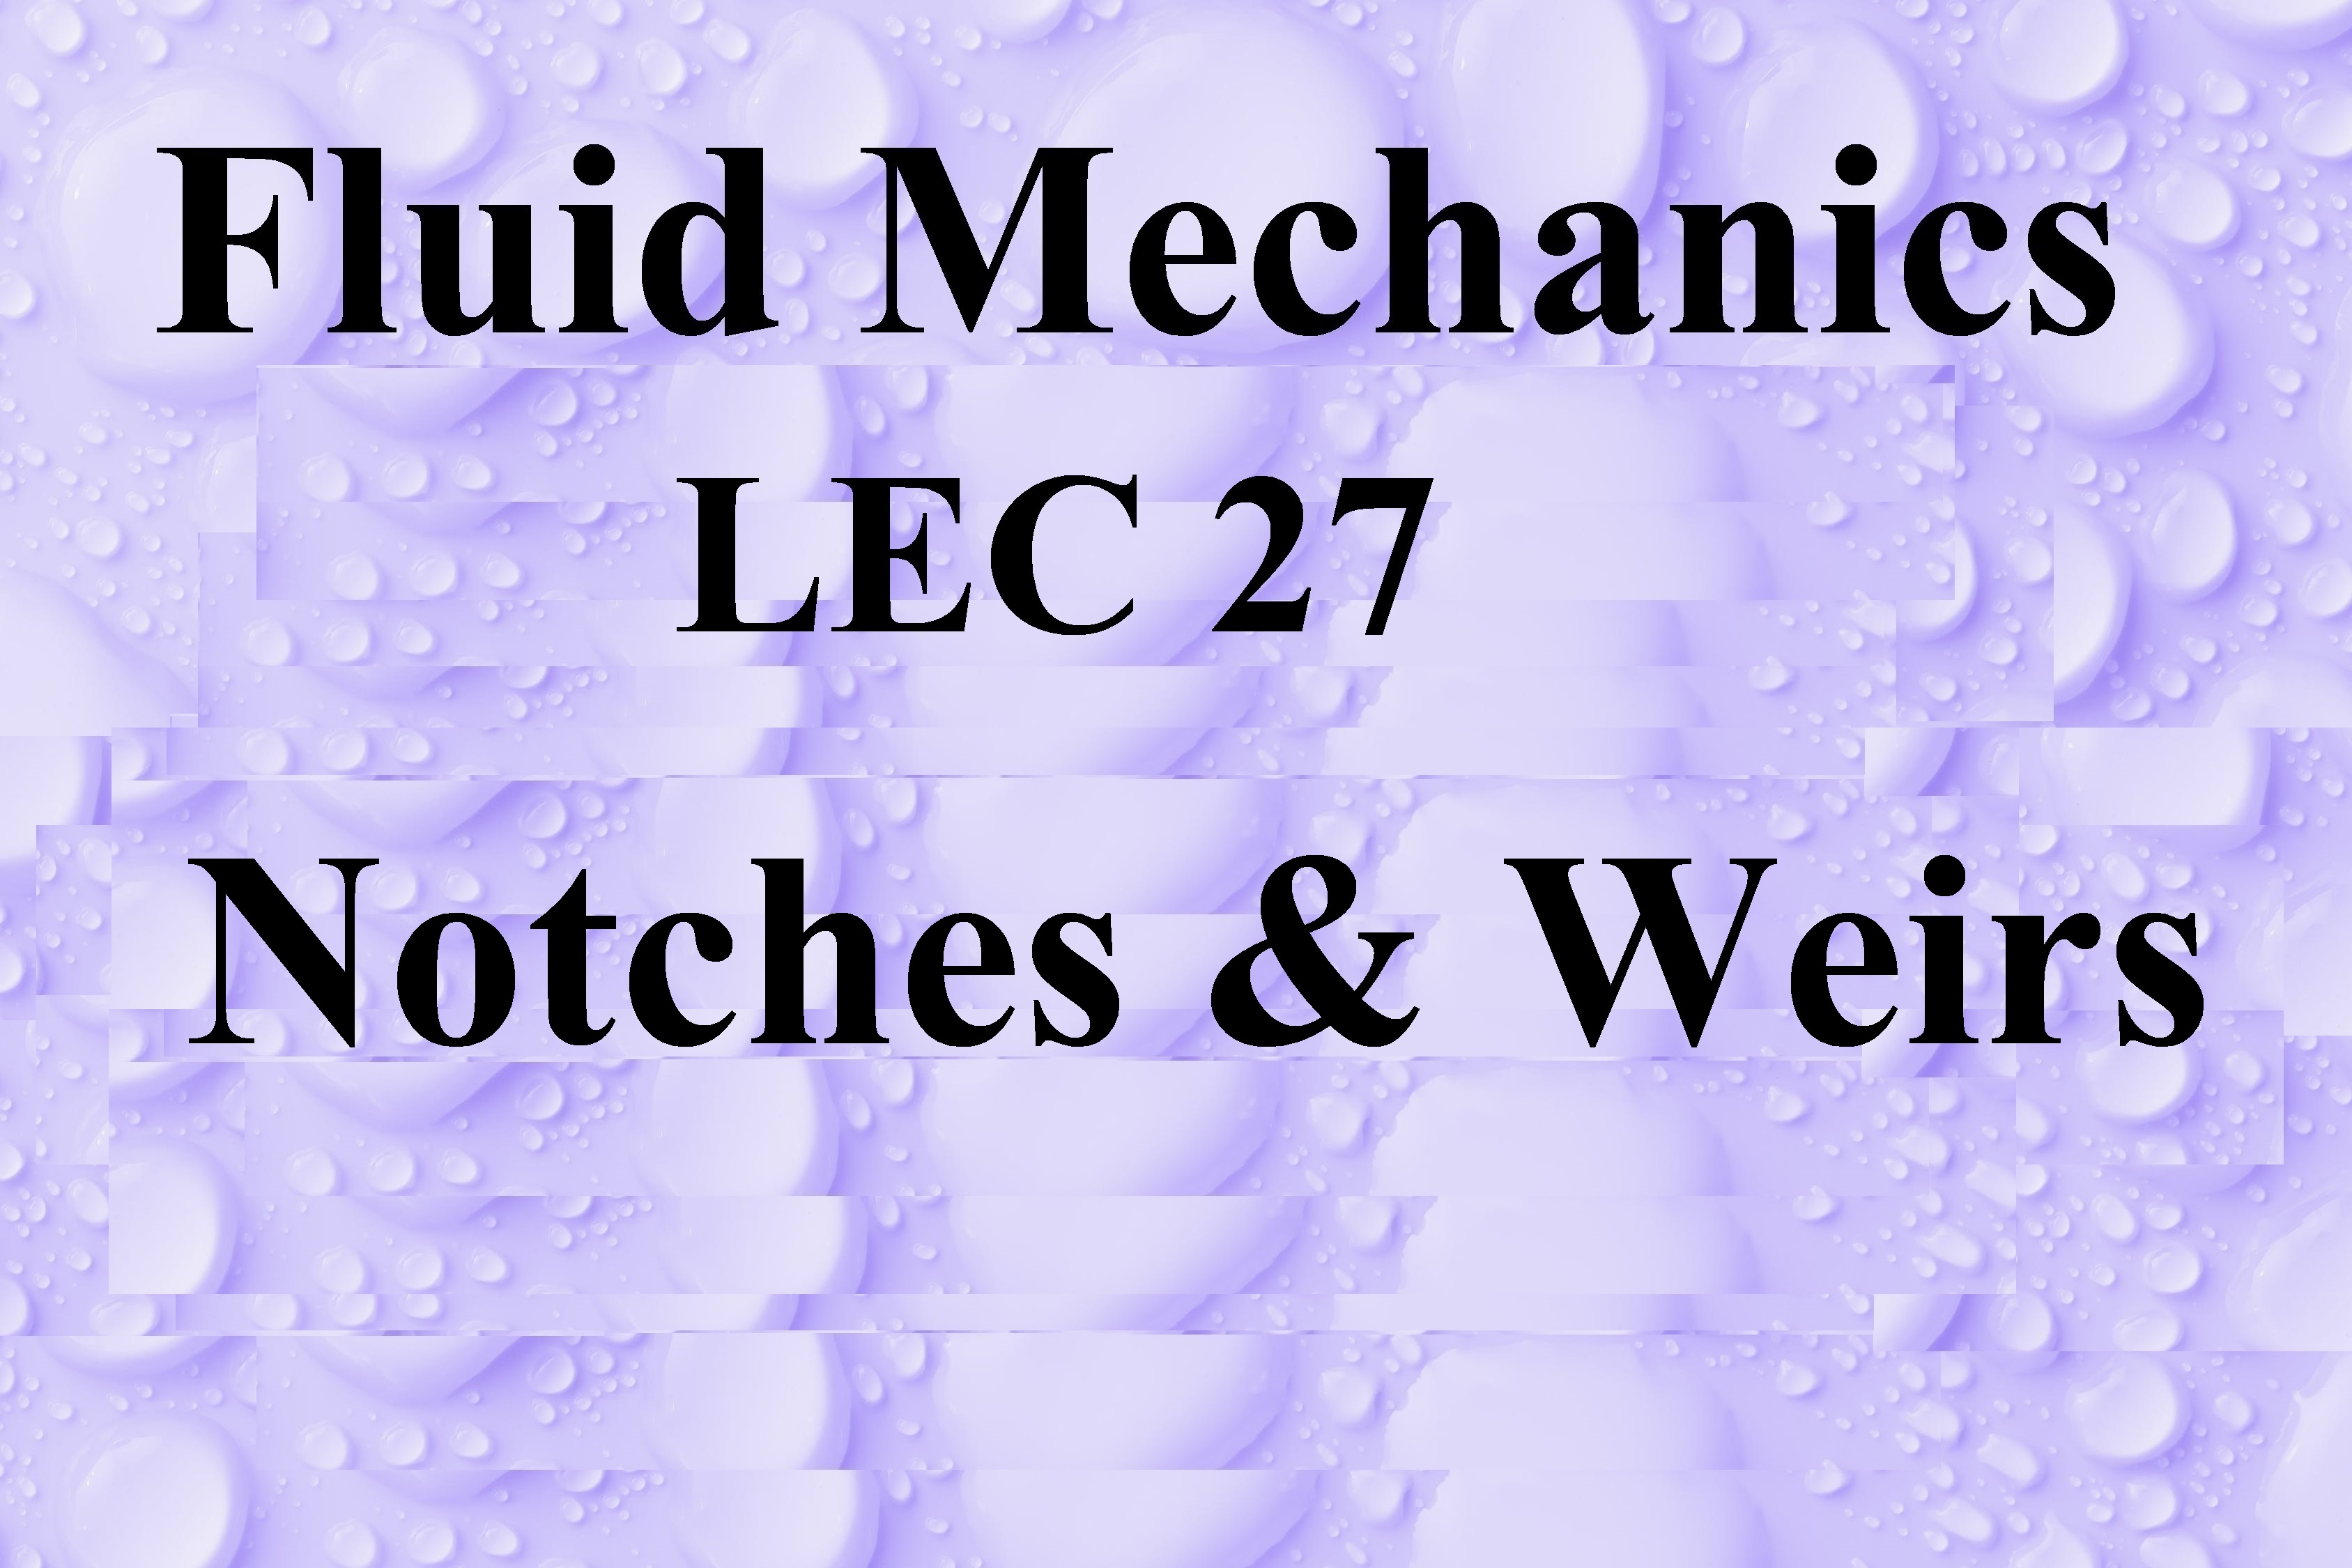 Lec 27 Notches and Weirs